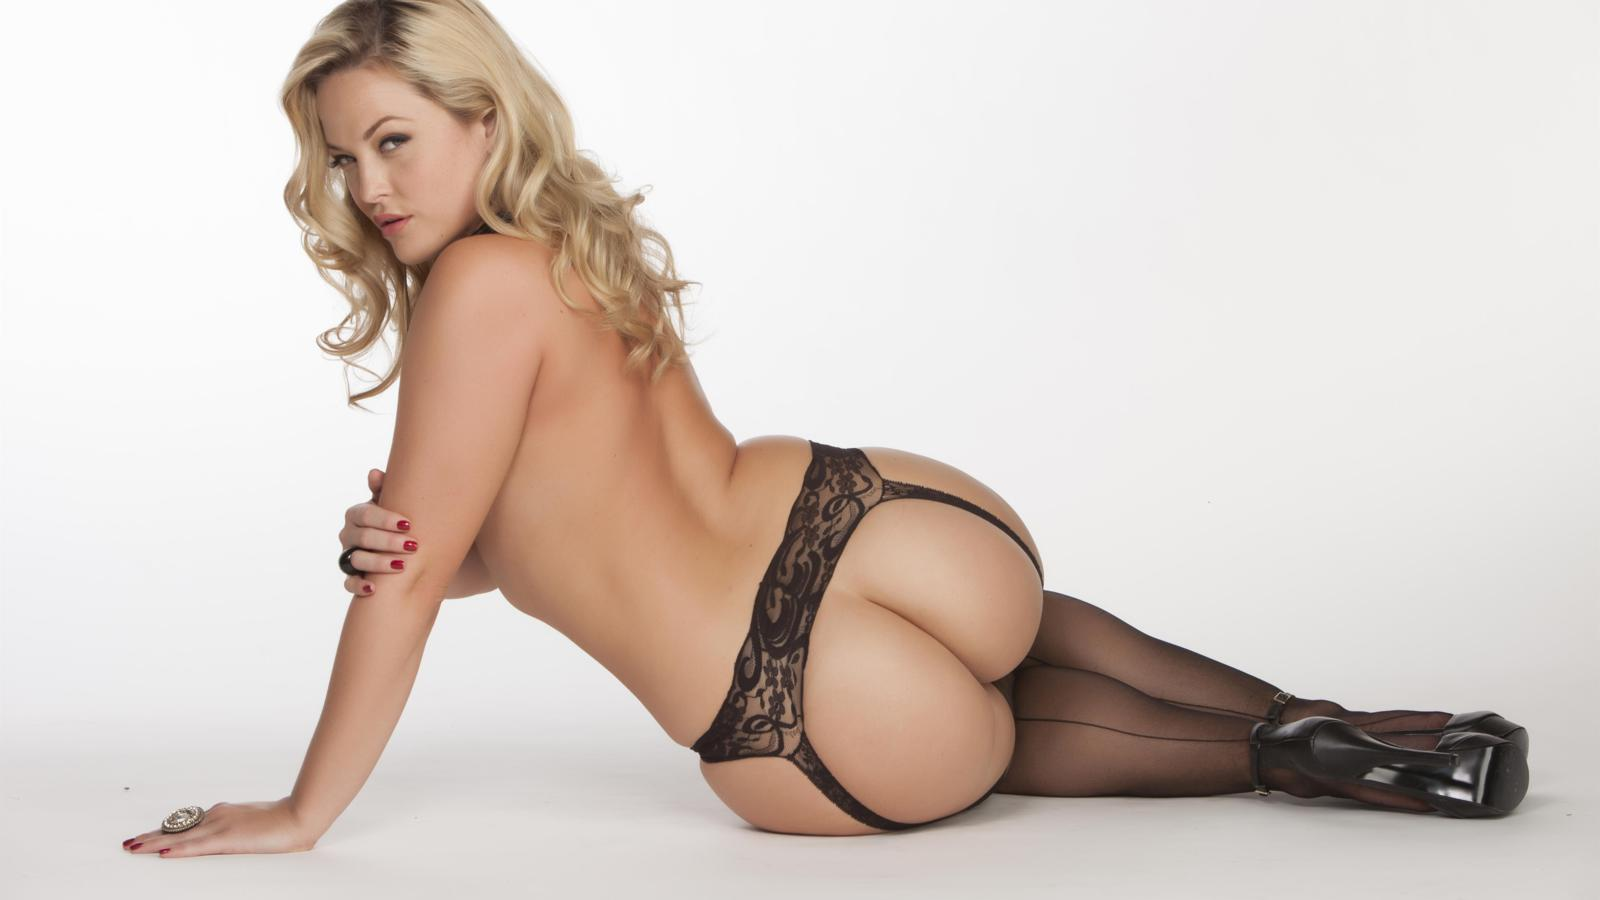 Download photo 1600x900, alexis texas, ass, blonde ...